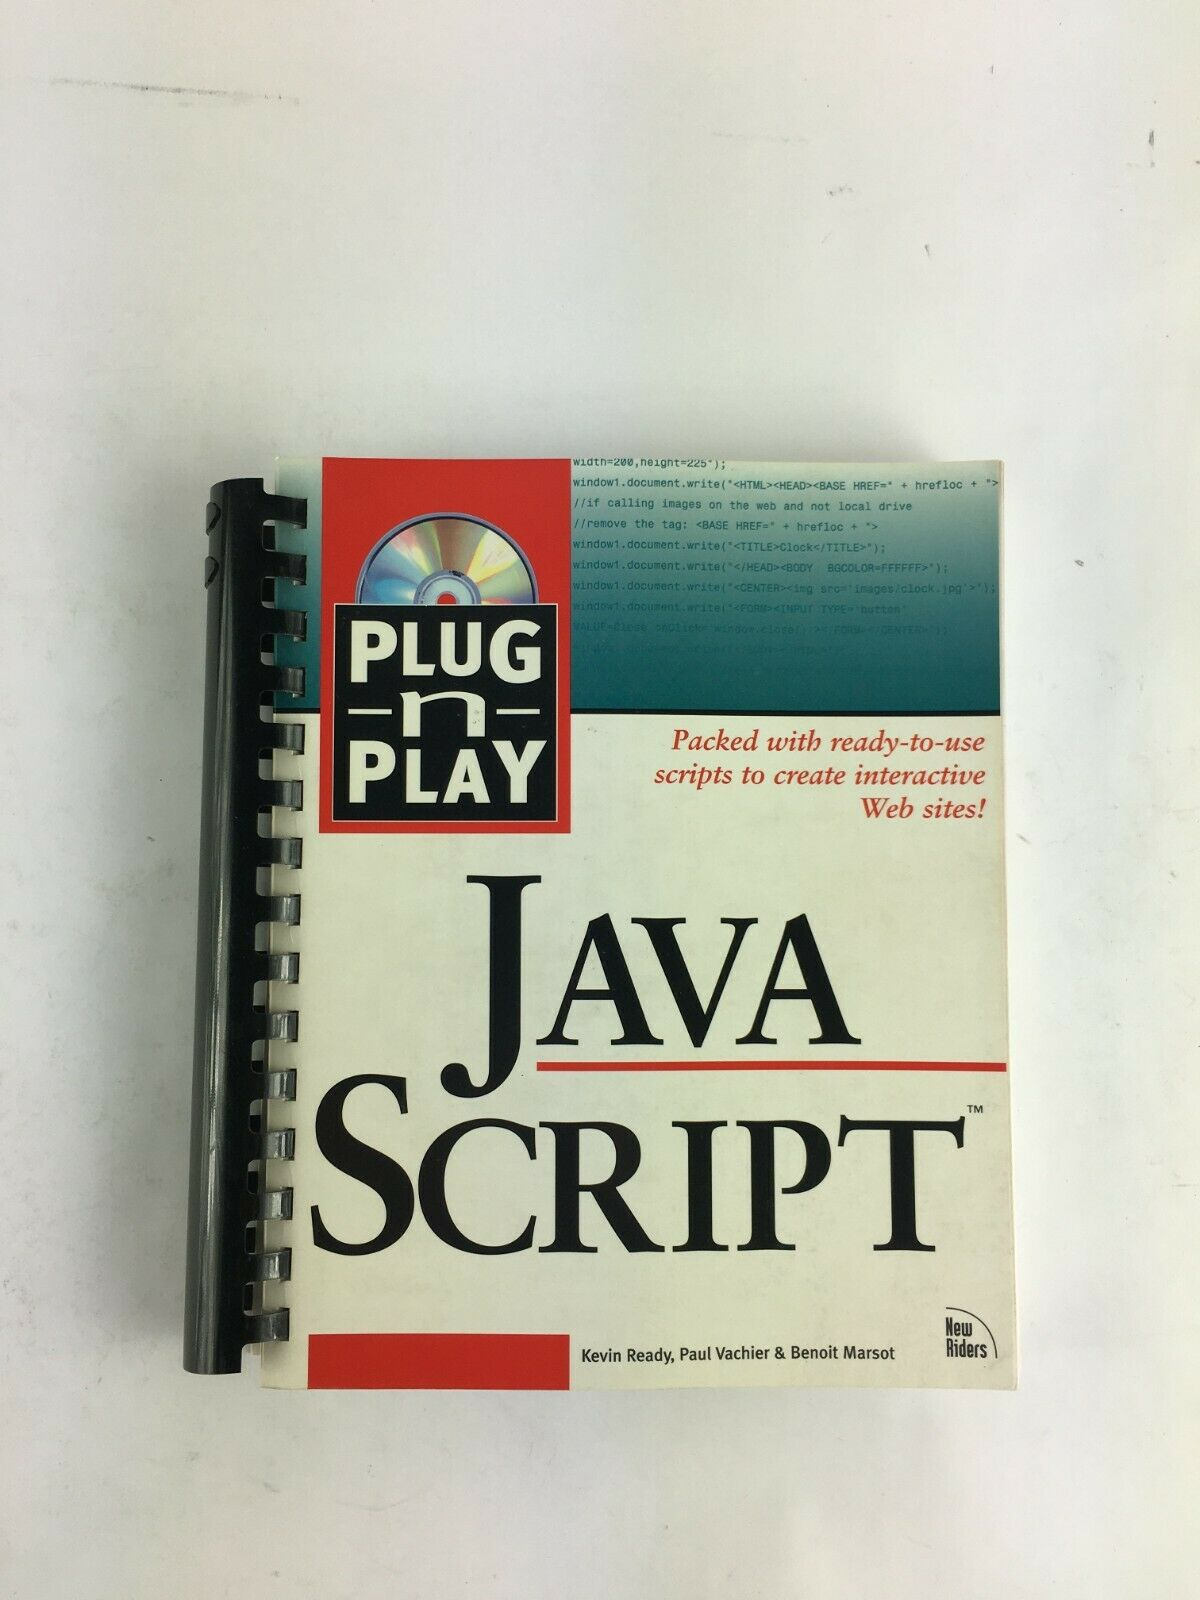 Plug n Play Java Script Kevin Ready Paul Vachier and Benoit Marsot |